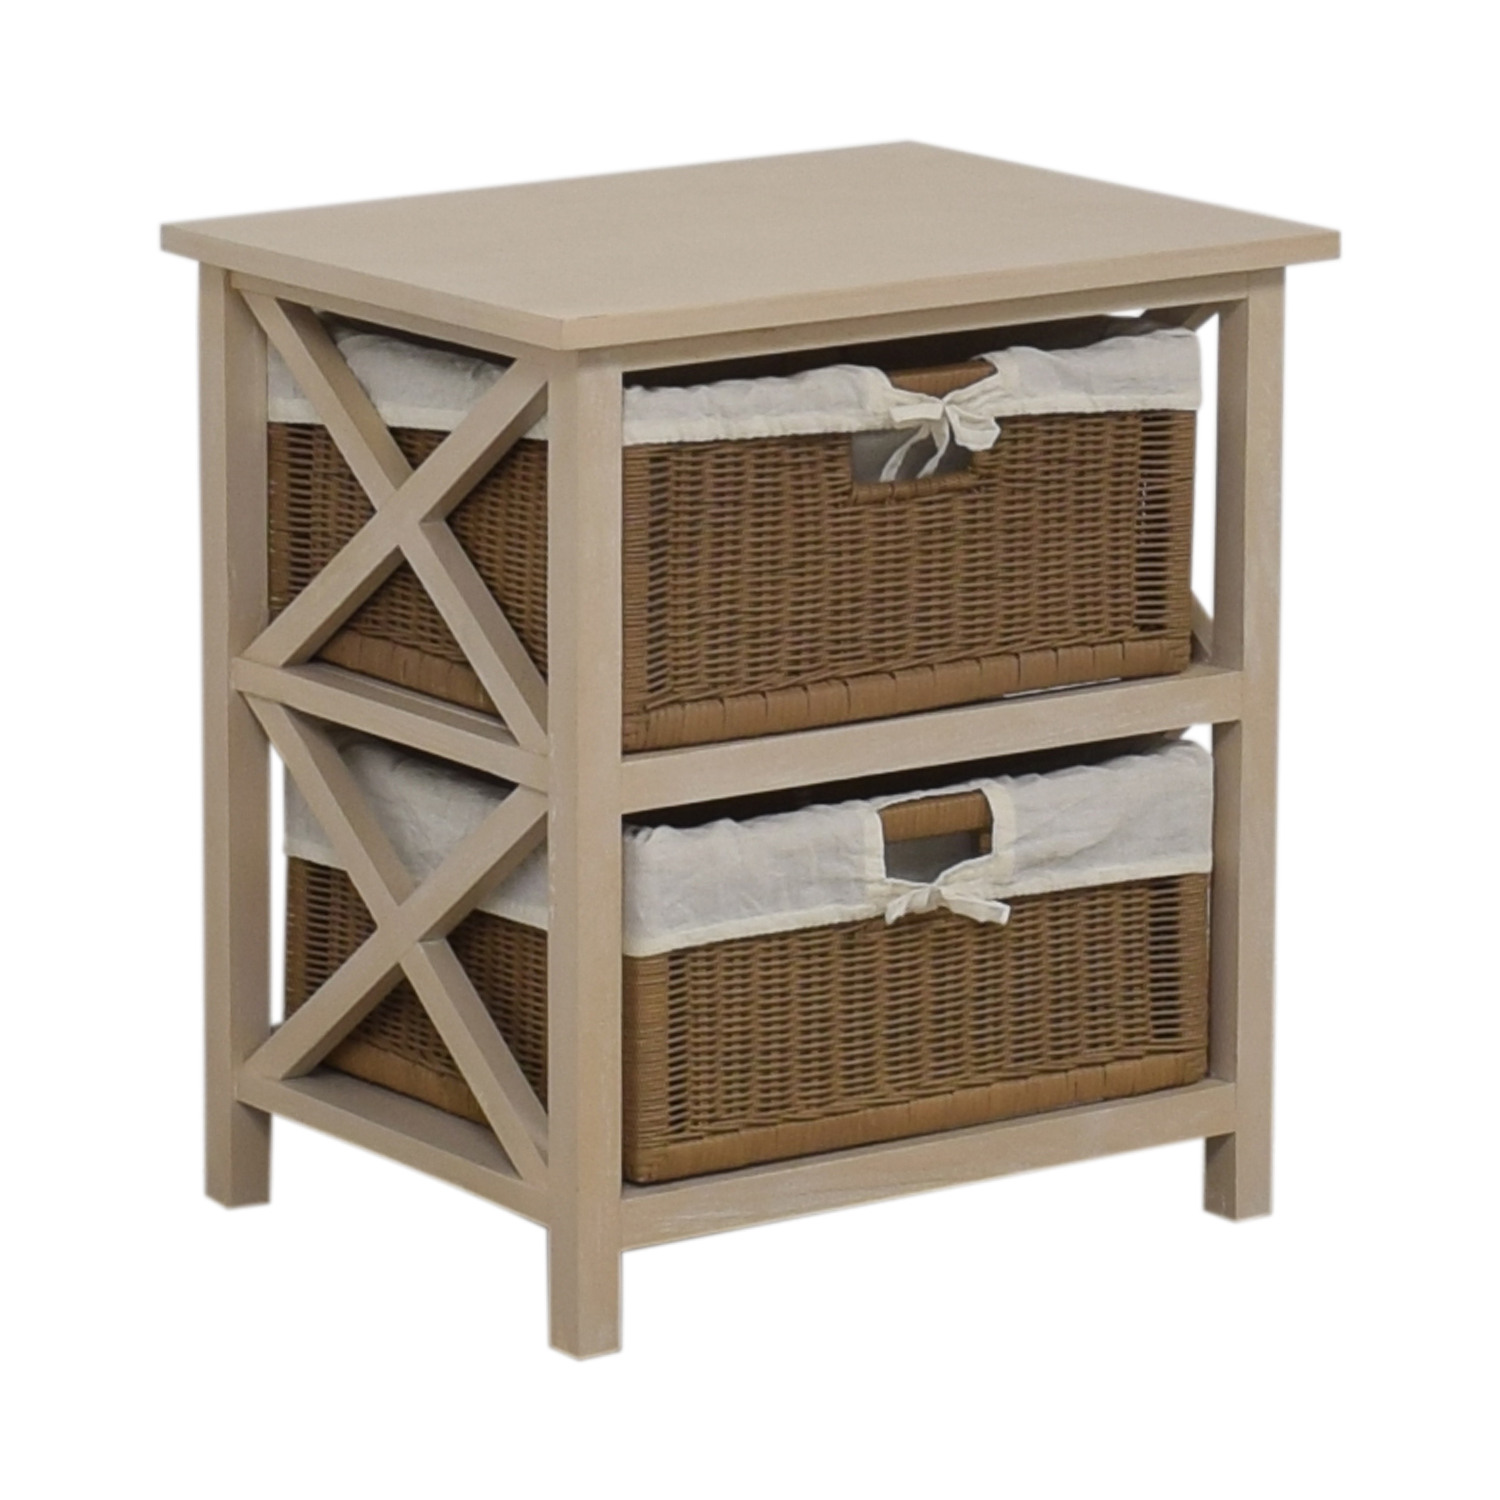 End Table With Two Wicker Baskets